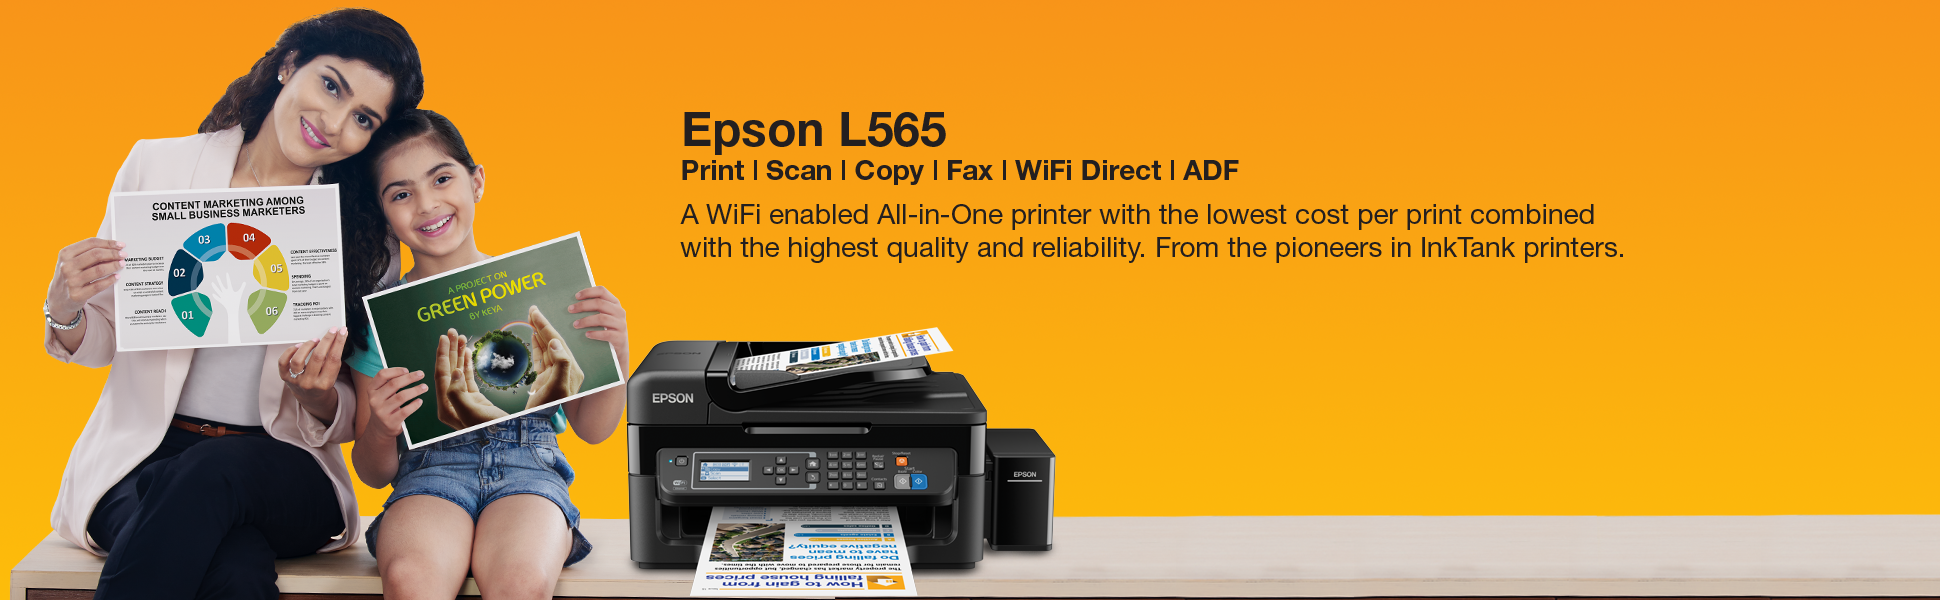 Epson L565 Wi-Fi All-in-One Ink Tank Printer,Fax,Scan,Copy,Print